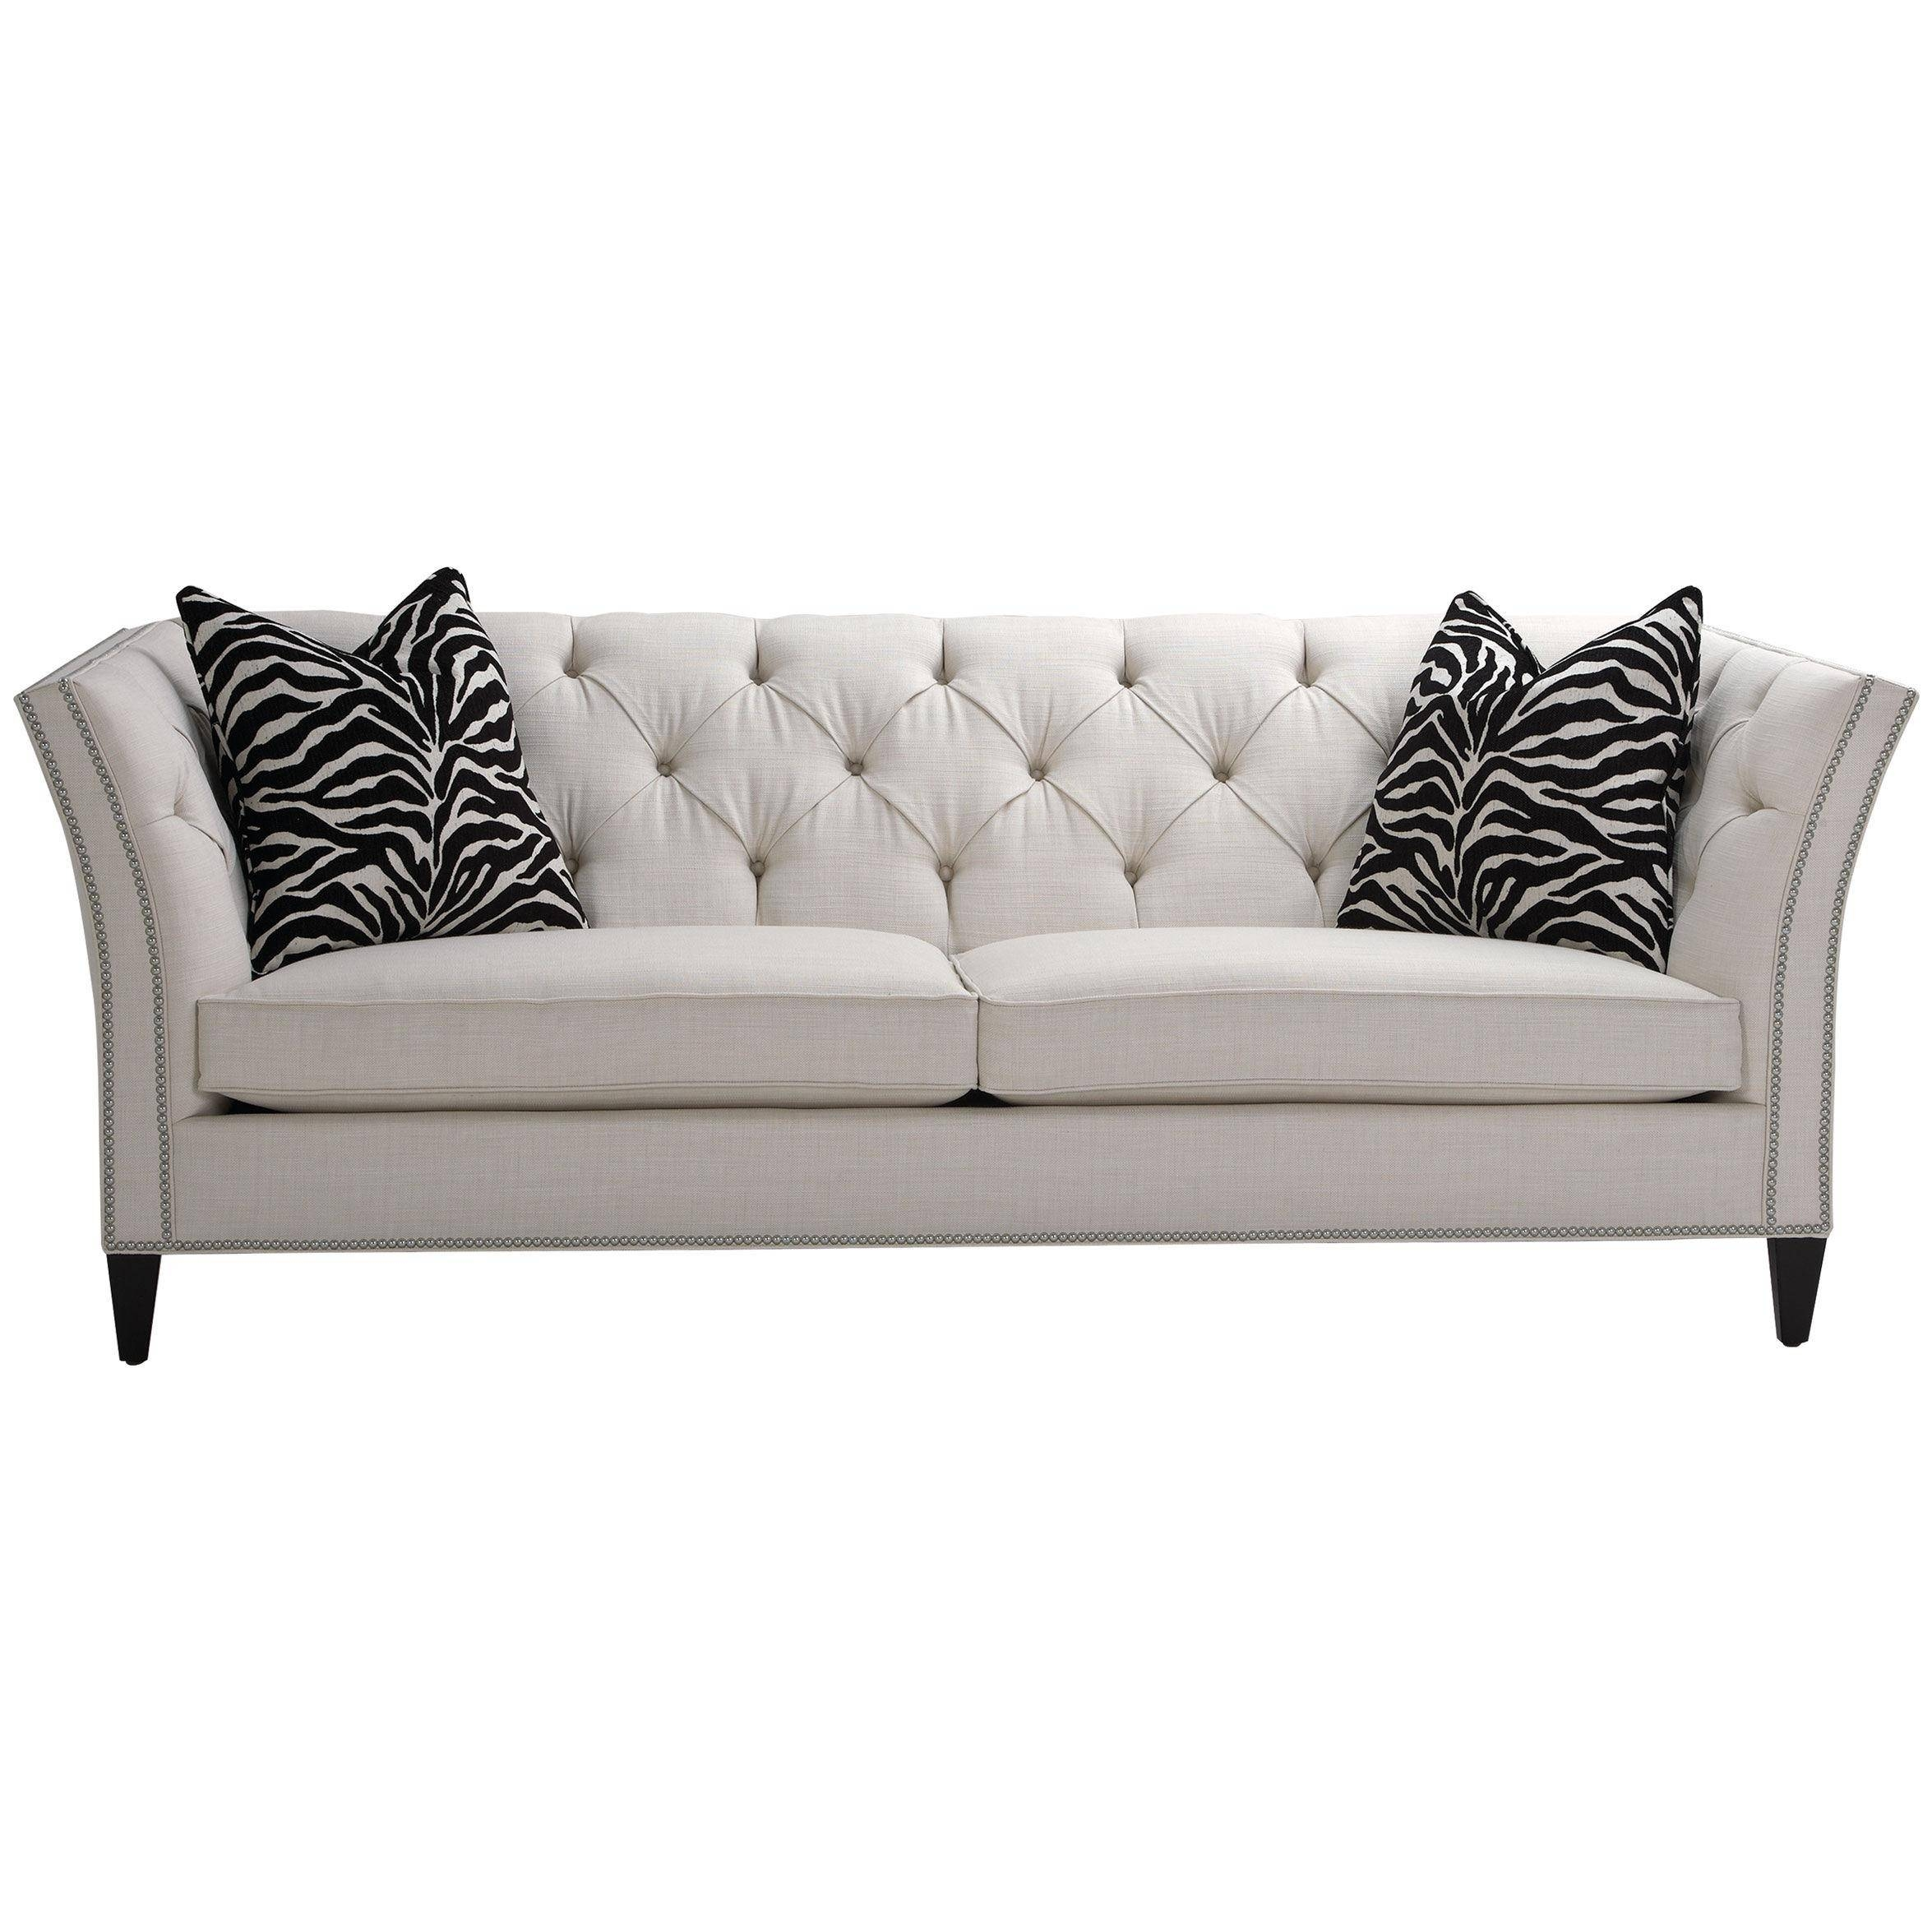 2017 Latest Allen White Sofas | Sofa Ideas regarding Allen White Sofas (Image 1 of 15)